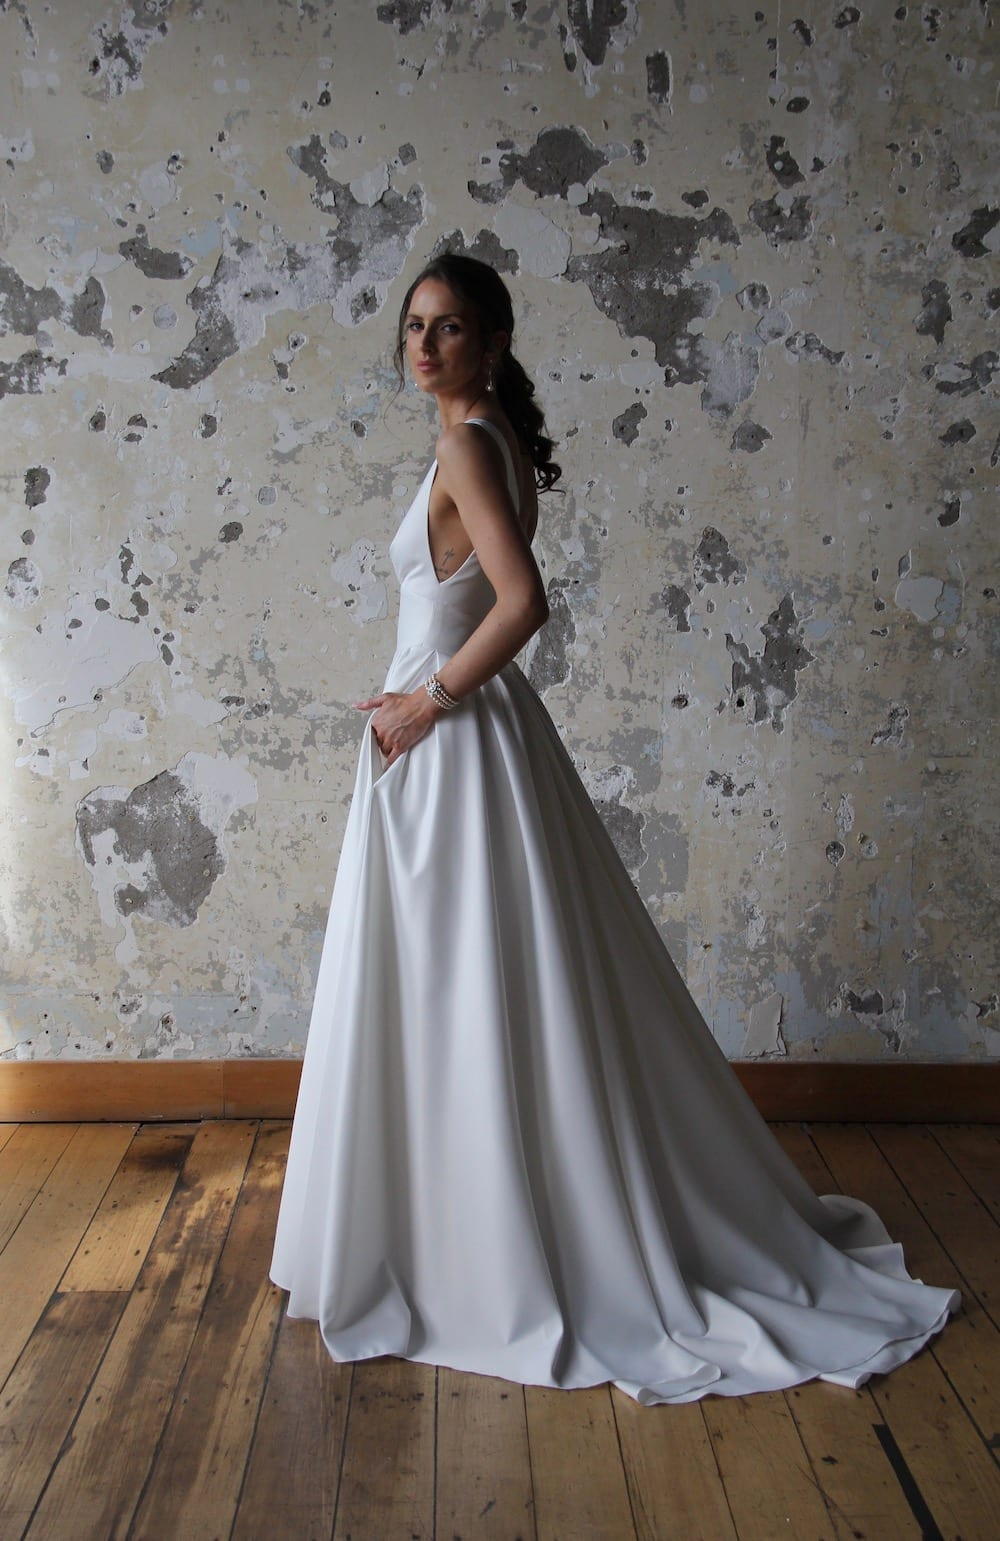 Female model wearing Vinka Design Modern Muse Wedding Dress. In chic warehouse the side detail of a gown with plunging v-neckline, Clean, sharp lines and skirt with deep pleated folds and pockets.